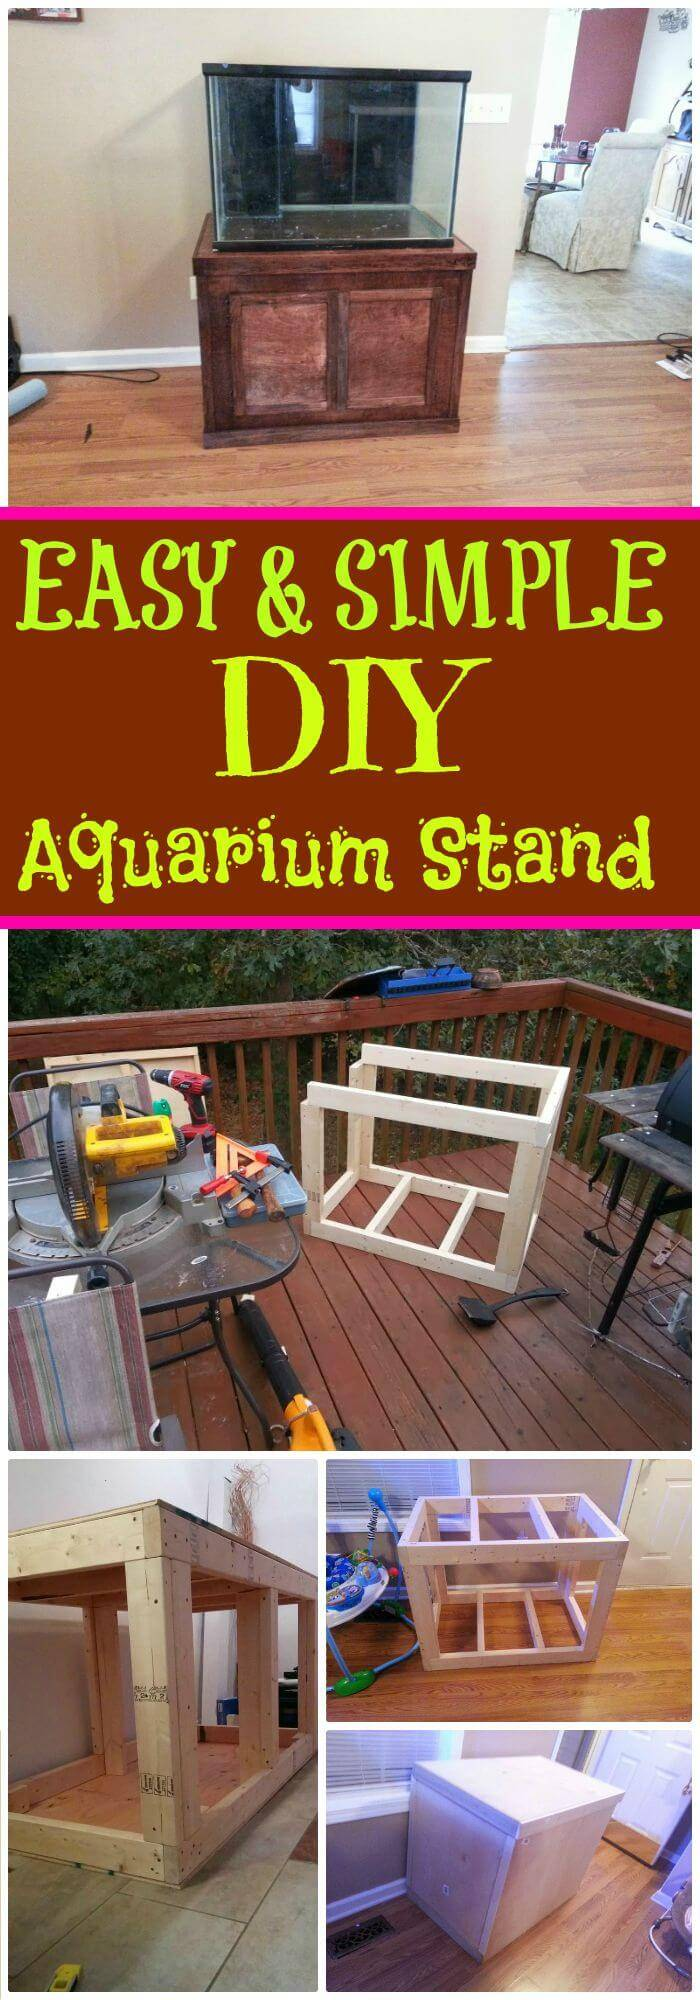 DIY Easy & Cute Aquarium Stand, insanely smart diy aquarium stand projects on a budget!